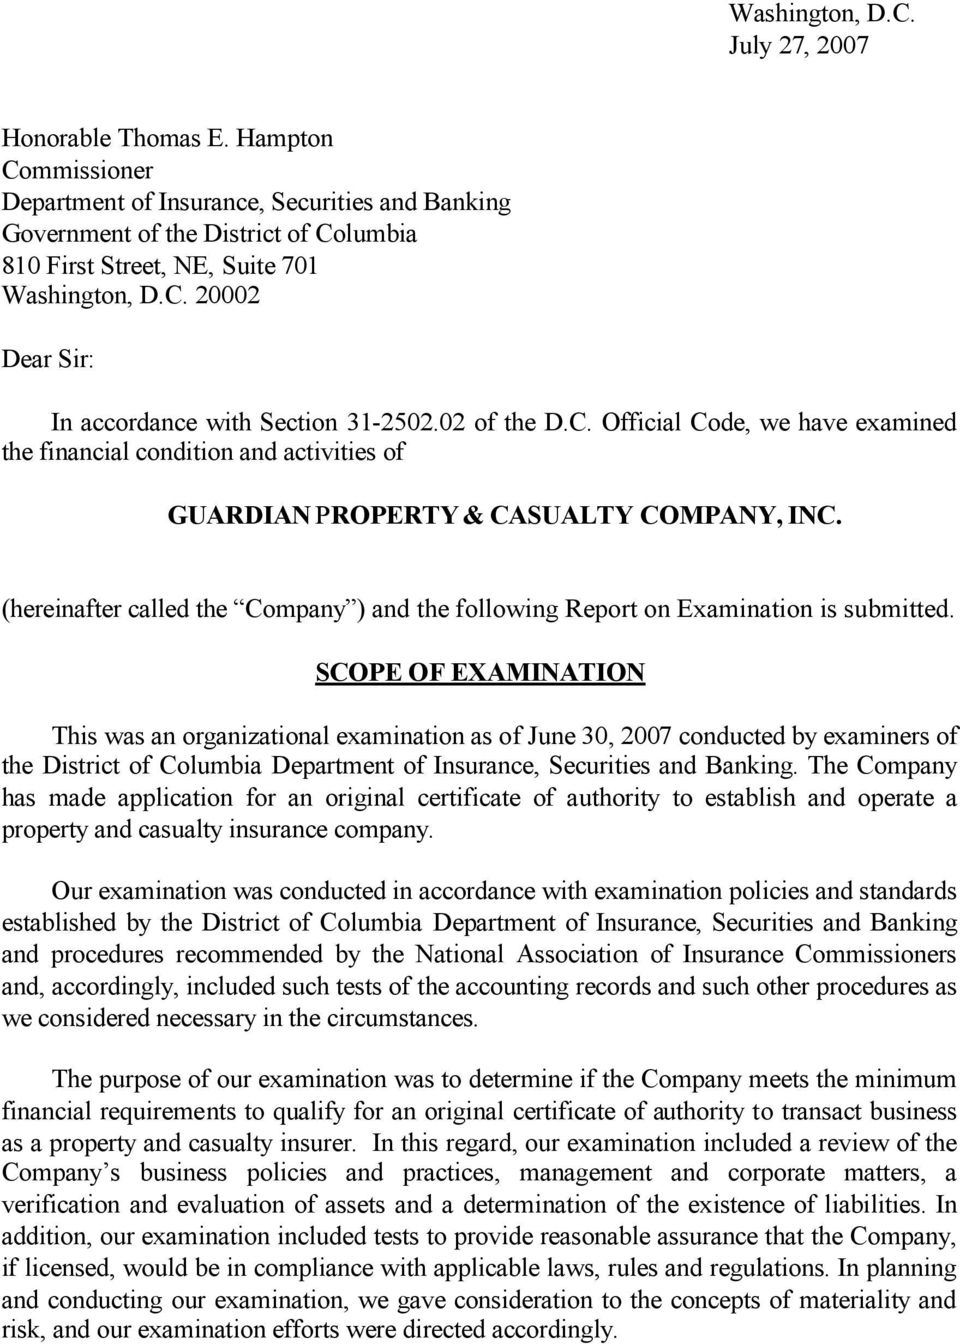 02 of the D.C. Official Code, we have examined the financial condition and activities of GUARDIAN PROPERTY & CASUALTY COMPANY, INC.